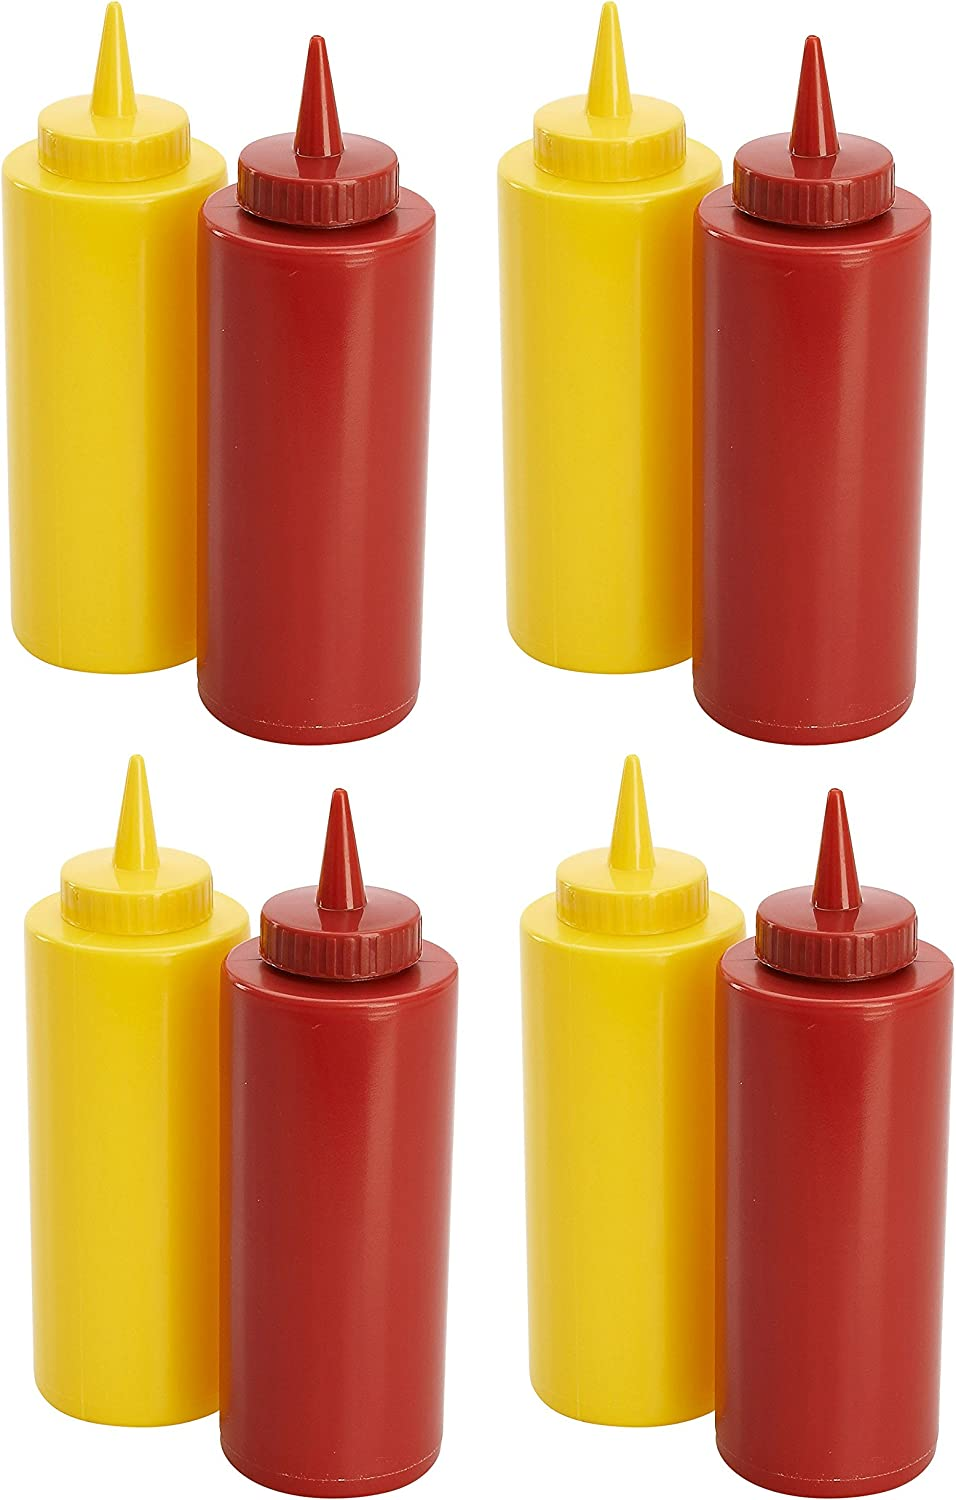 4 Sets of Plastic 11.5 oz Ketchup & Mustard 7 in Dispensers Bottles! Perfect for BBQ's, Picnics, Family Reunions, and Parties!